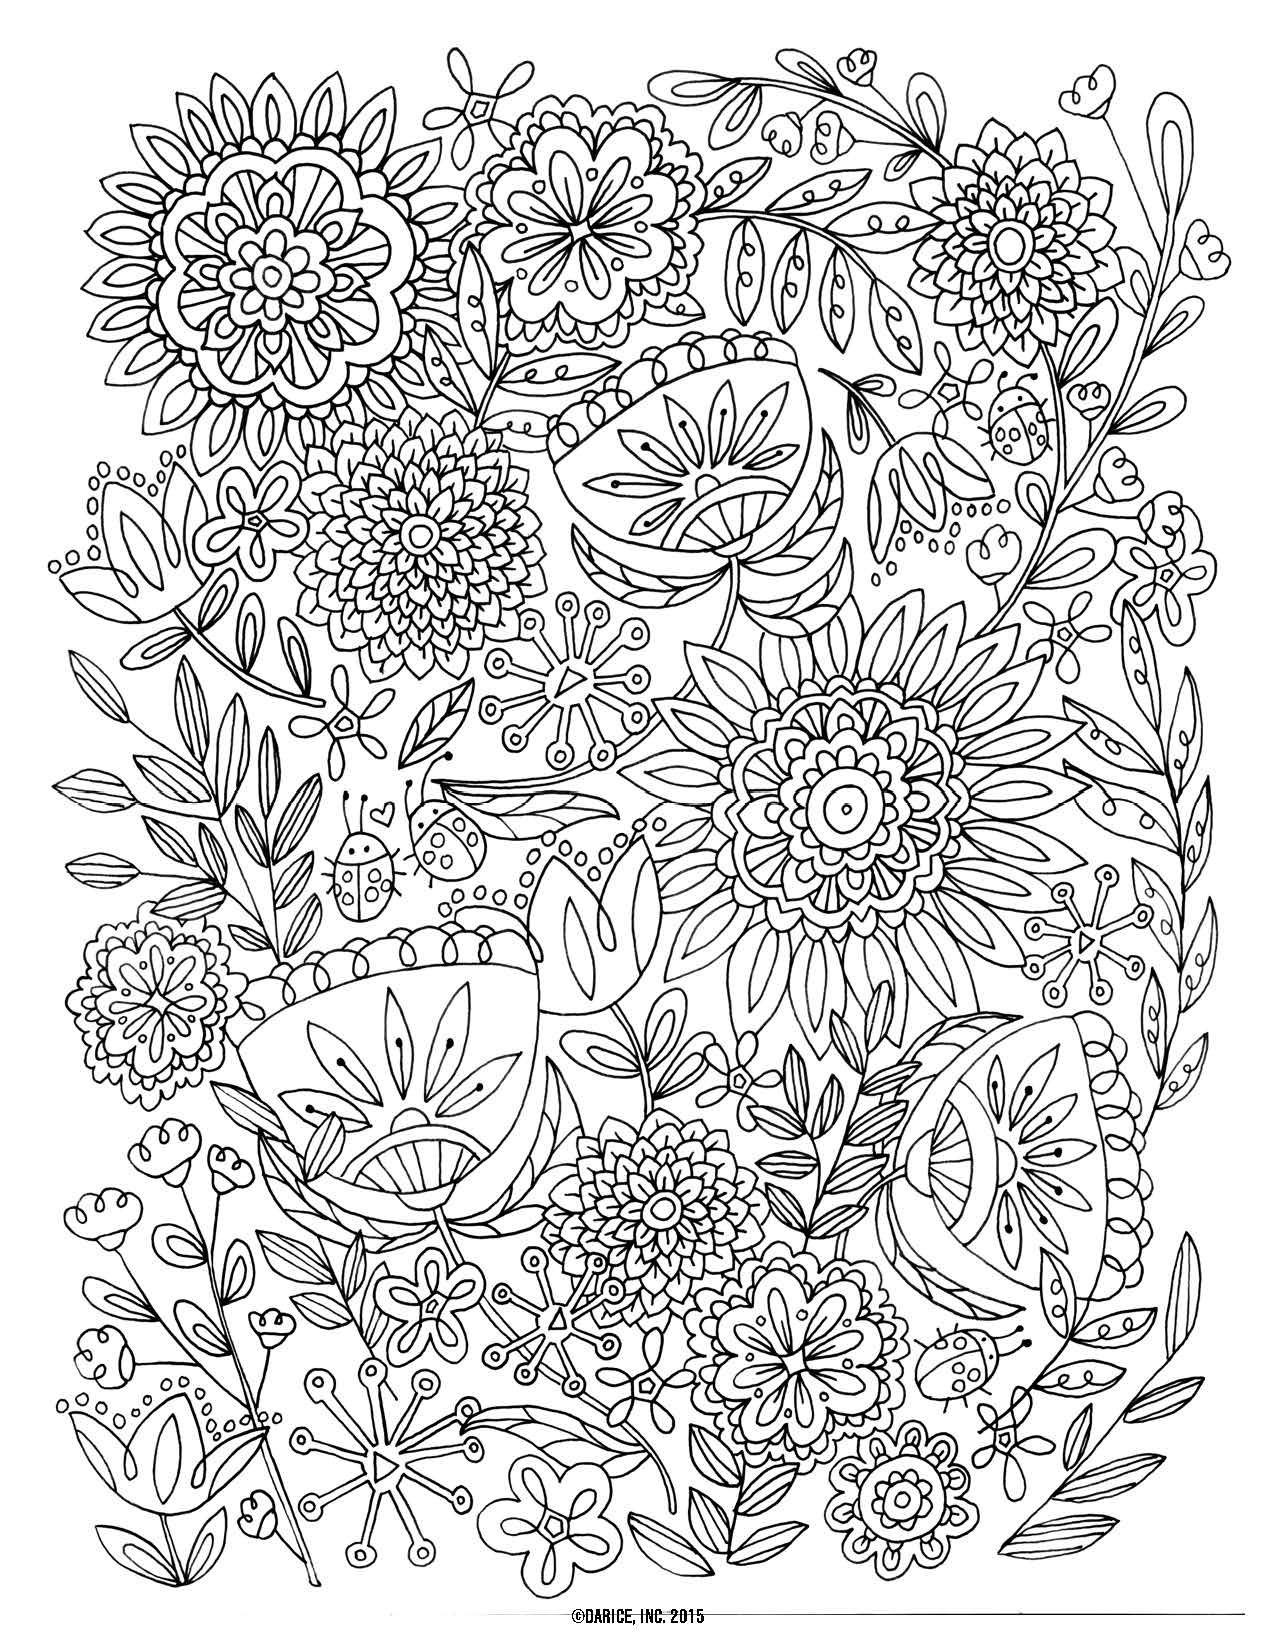 flowers in a round vase of cool vases flower vase coloring page pages flowers in a top i 0d with flower coloring book pages free coloring pages printables cool vases flower vase coloring page pages